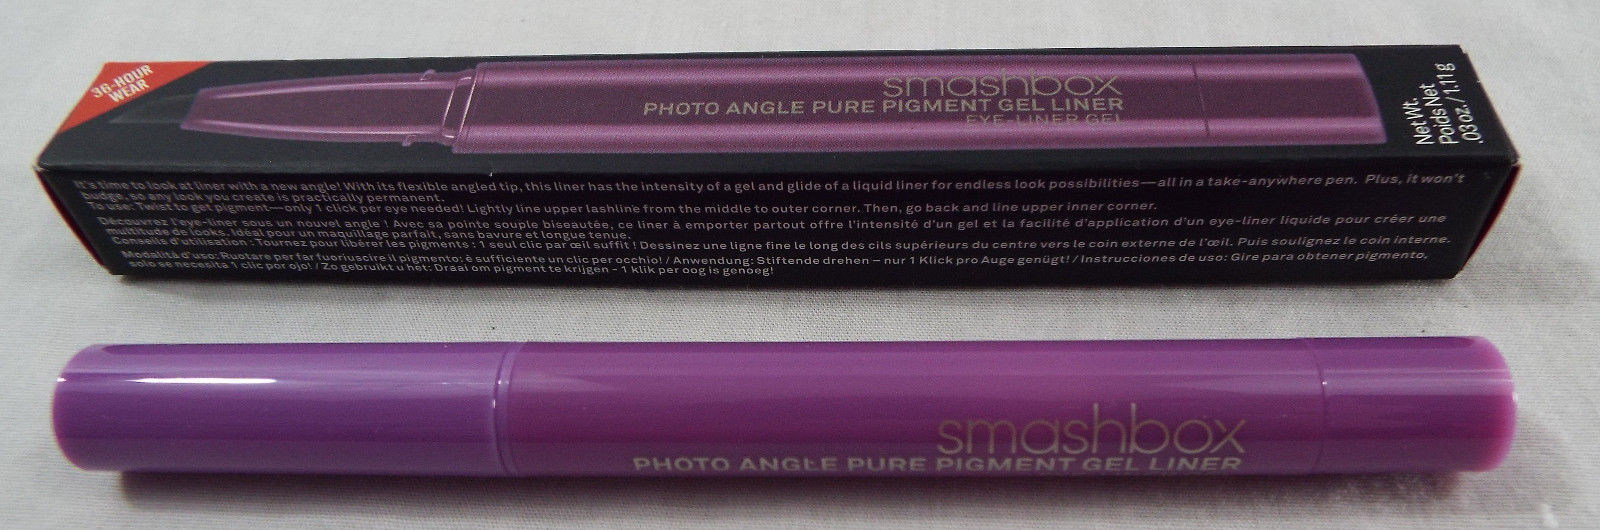 Smashbox Photo Angle Pure Pigment Gel Liner And 44 Similar Items